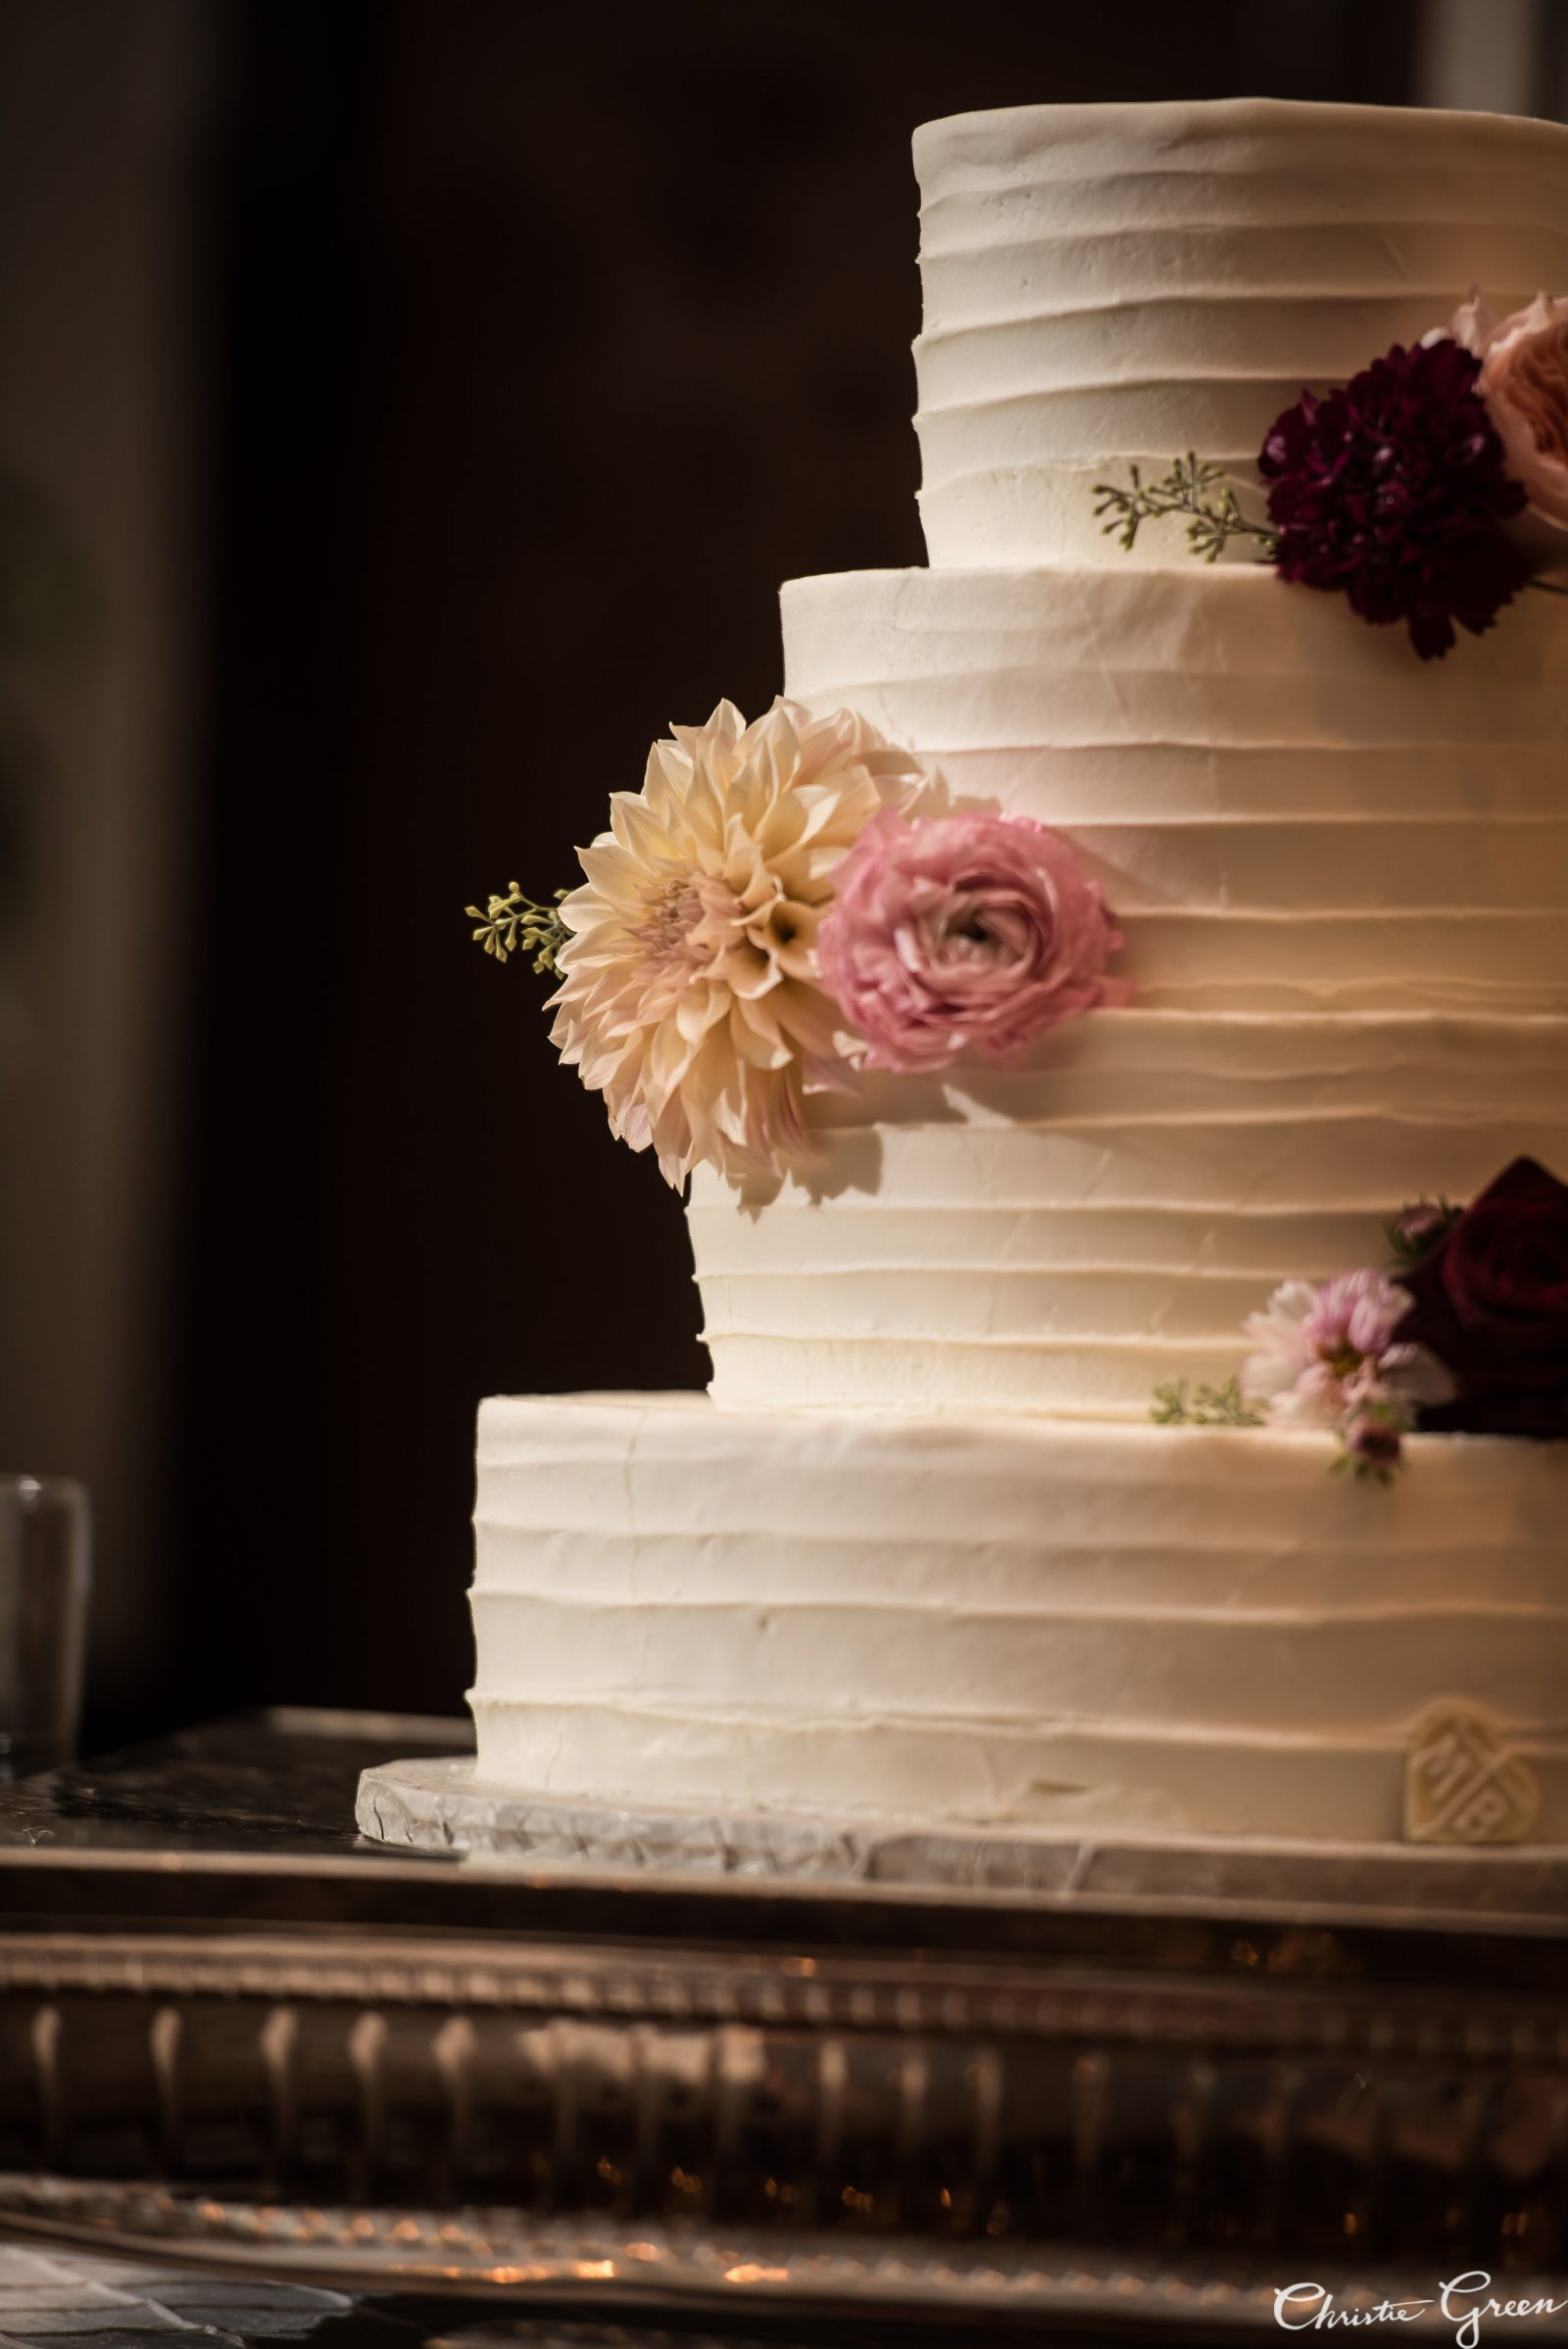 Four tier ivory buttercream cake by the Master's Baker topped with fresh flowers in blush, peach, and burgundy by Fresh Designs Florist. Photo by Christie Green Photography